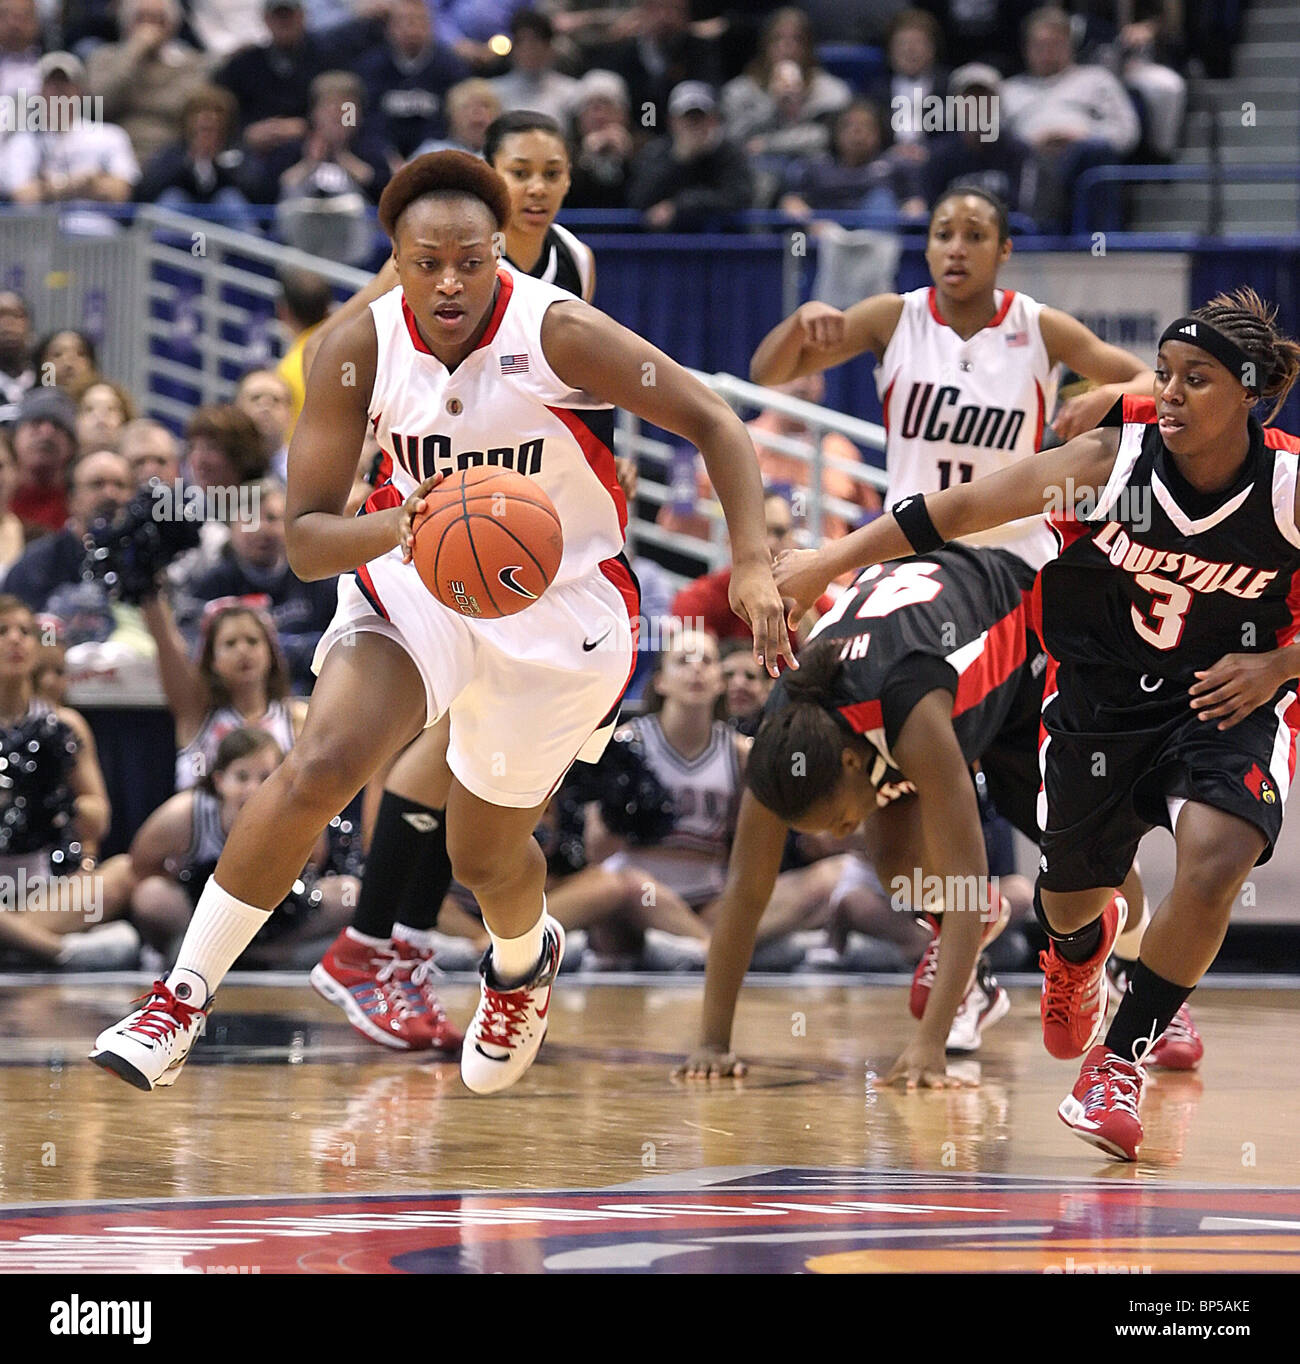 Game action of UCONN woman's basketball against Louisville. Both are the top rated women's basketball teams - Stock Image